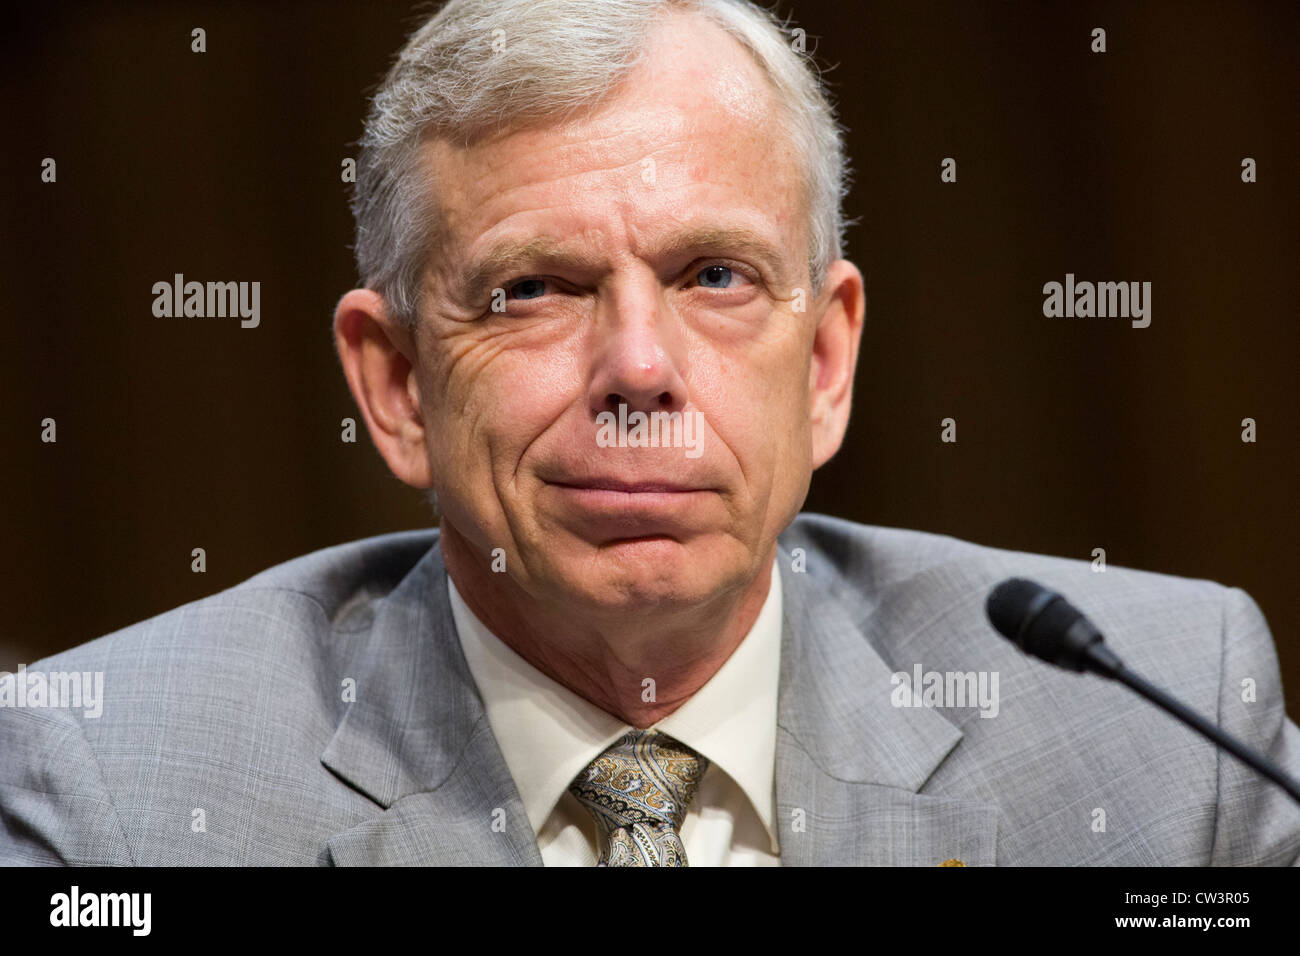 Lowell McAdam, President and Chief Executive Officer of Verizon.  - Stock Image